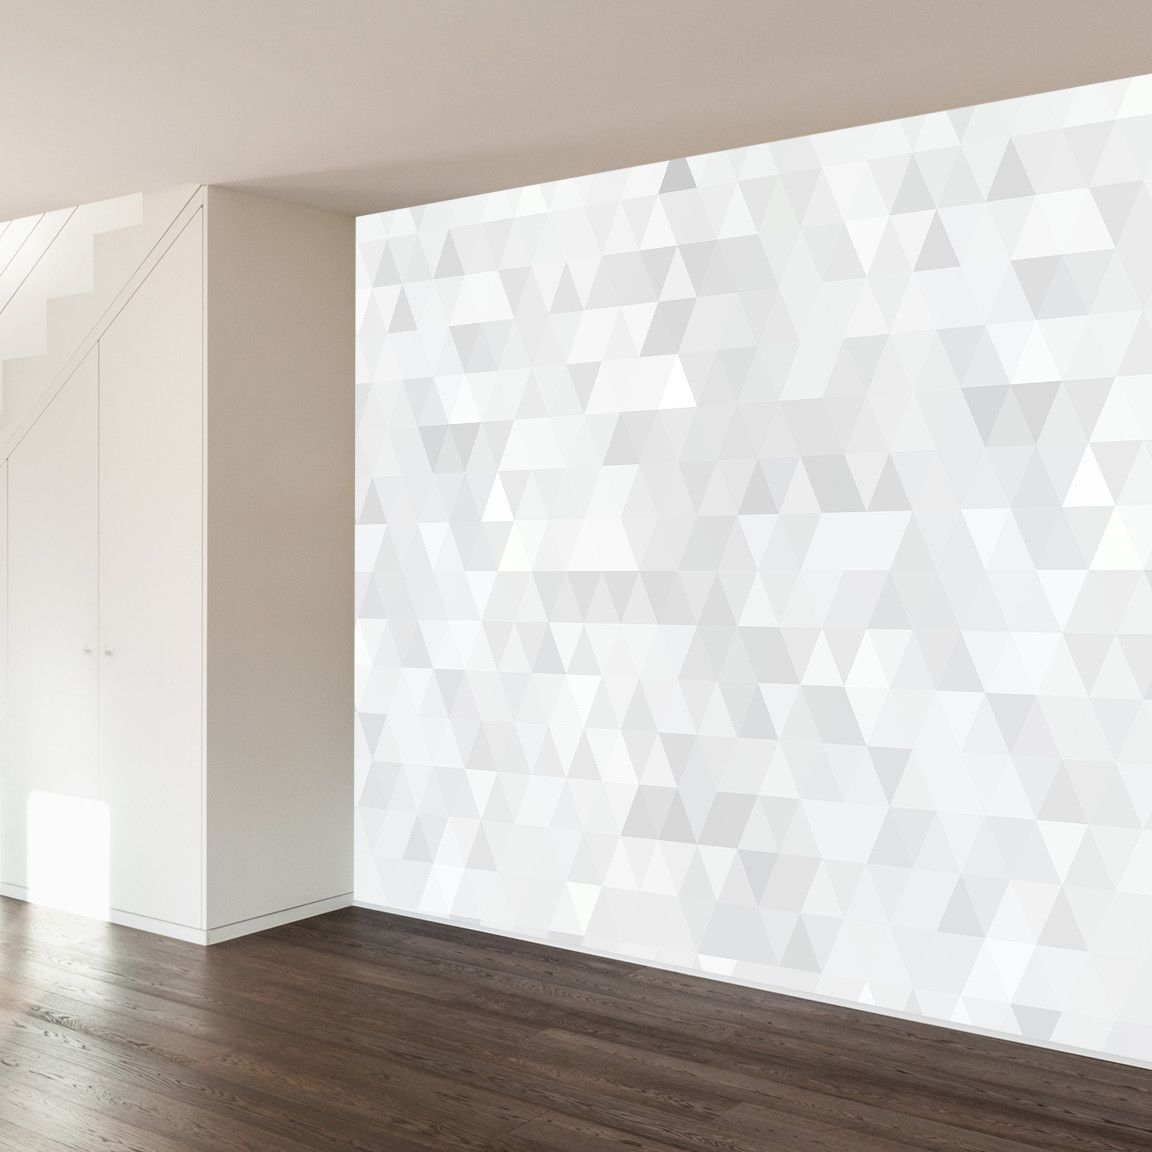 another wall paper option -Wall Murals from WallsNeedLove | lifestyle